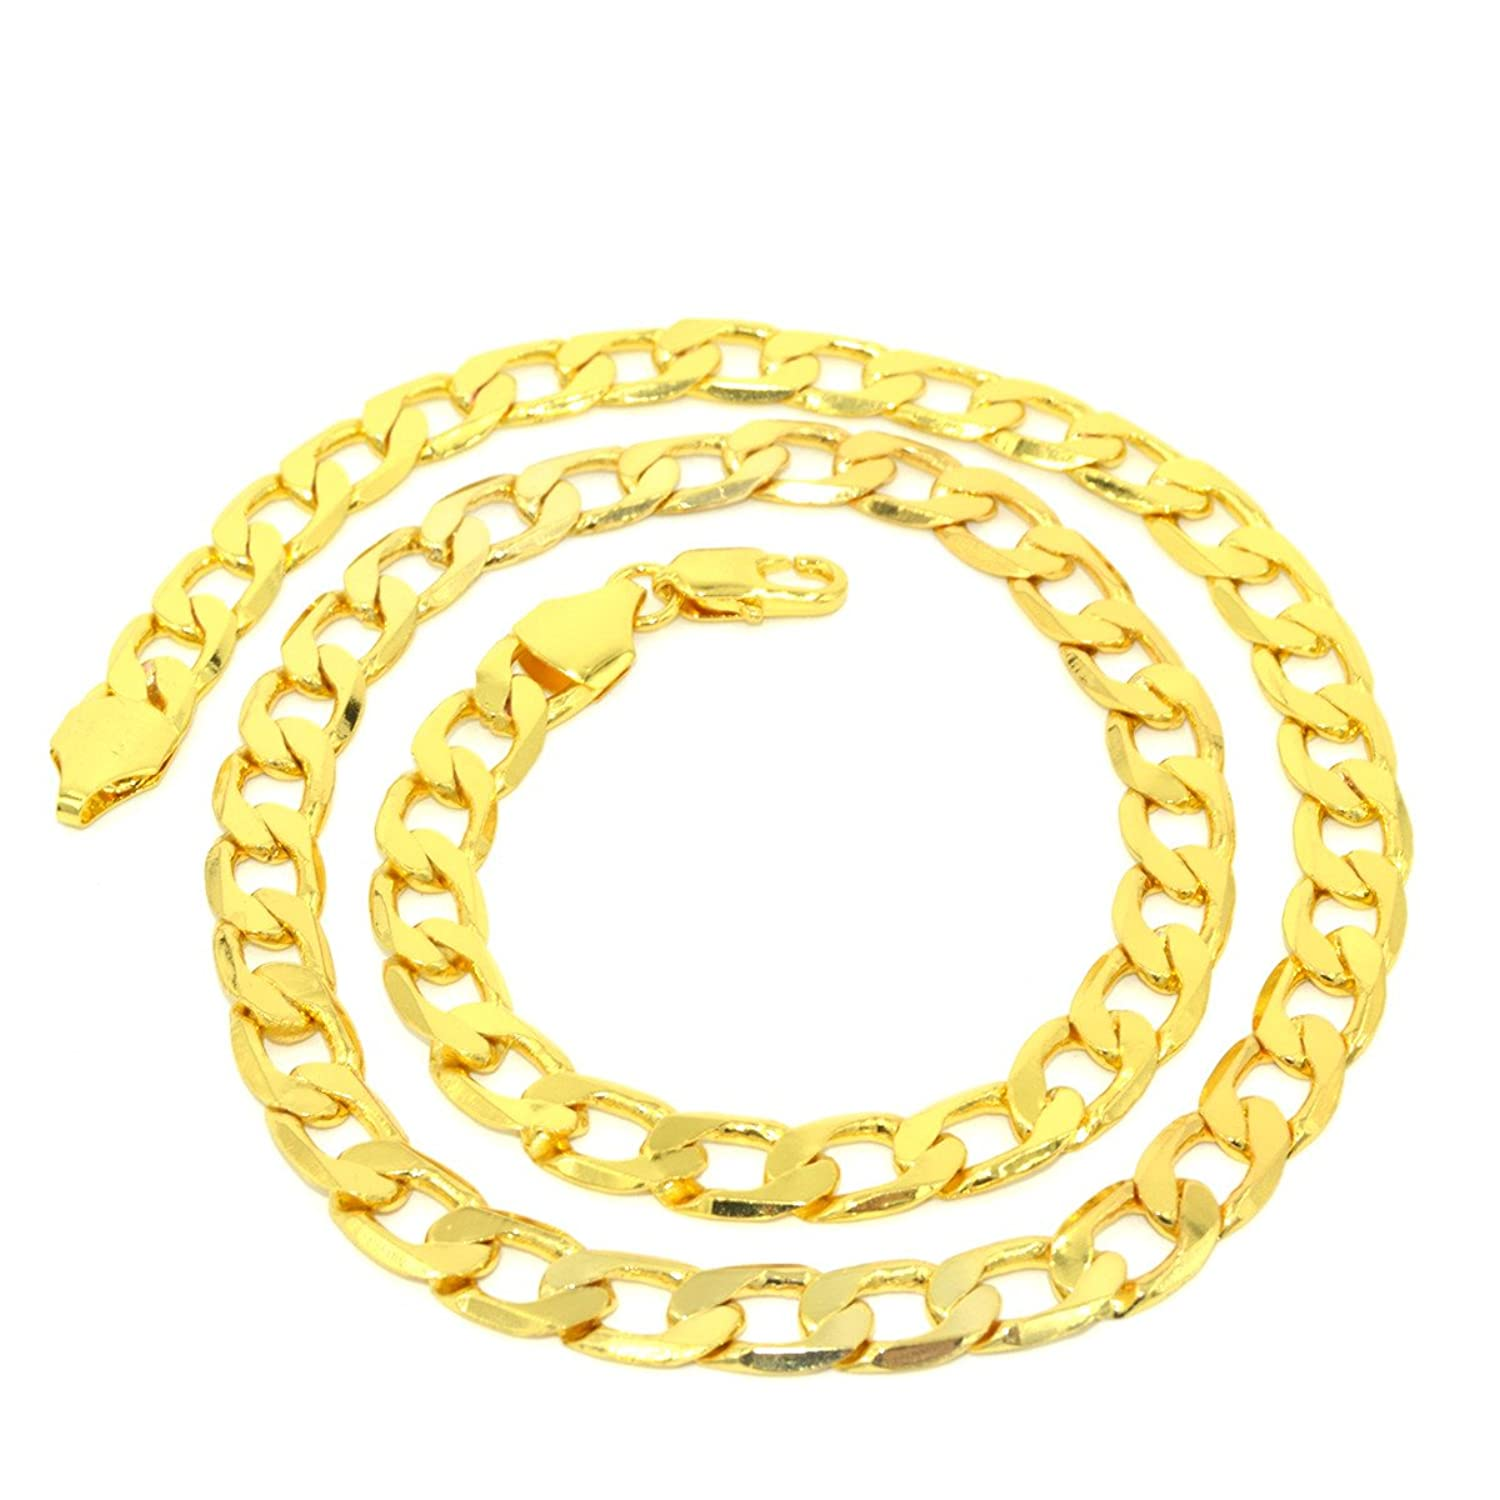 cut link made time life necklace chains with diamond smooth a chain usa gold warranty cuban products